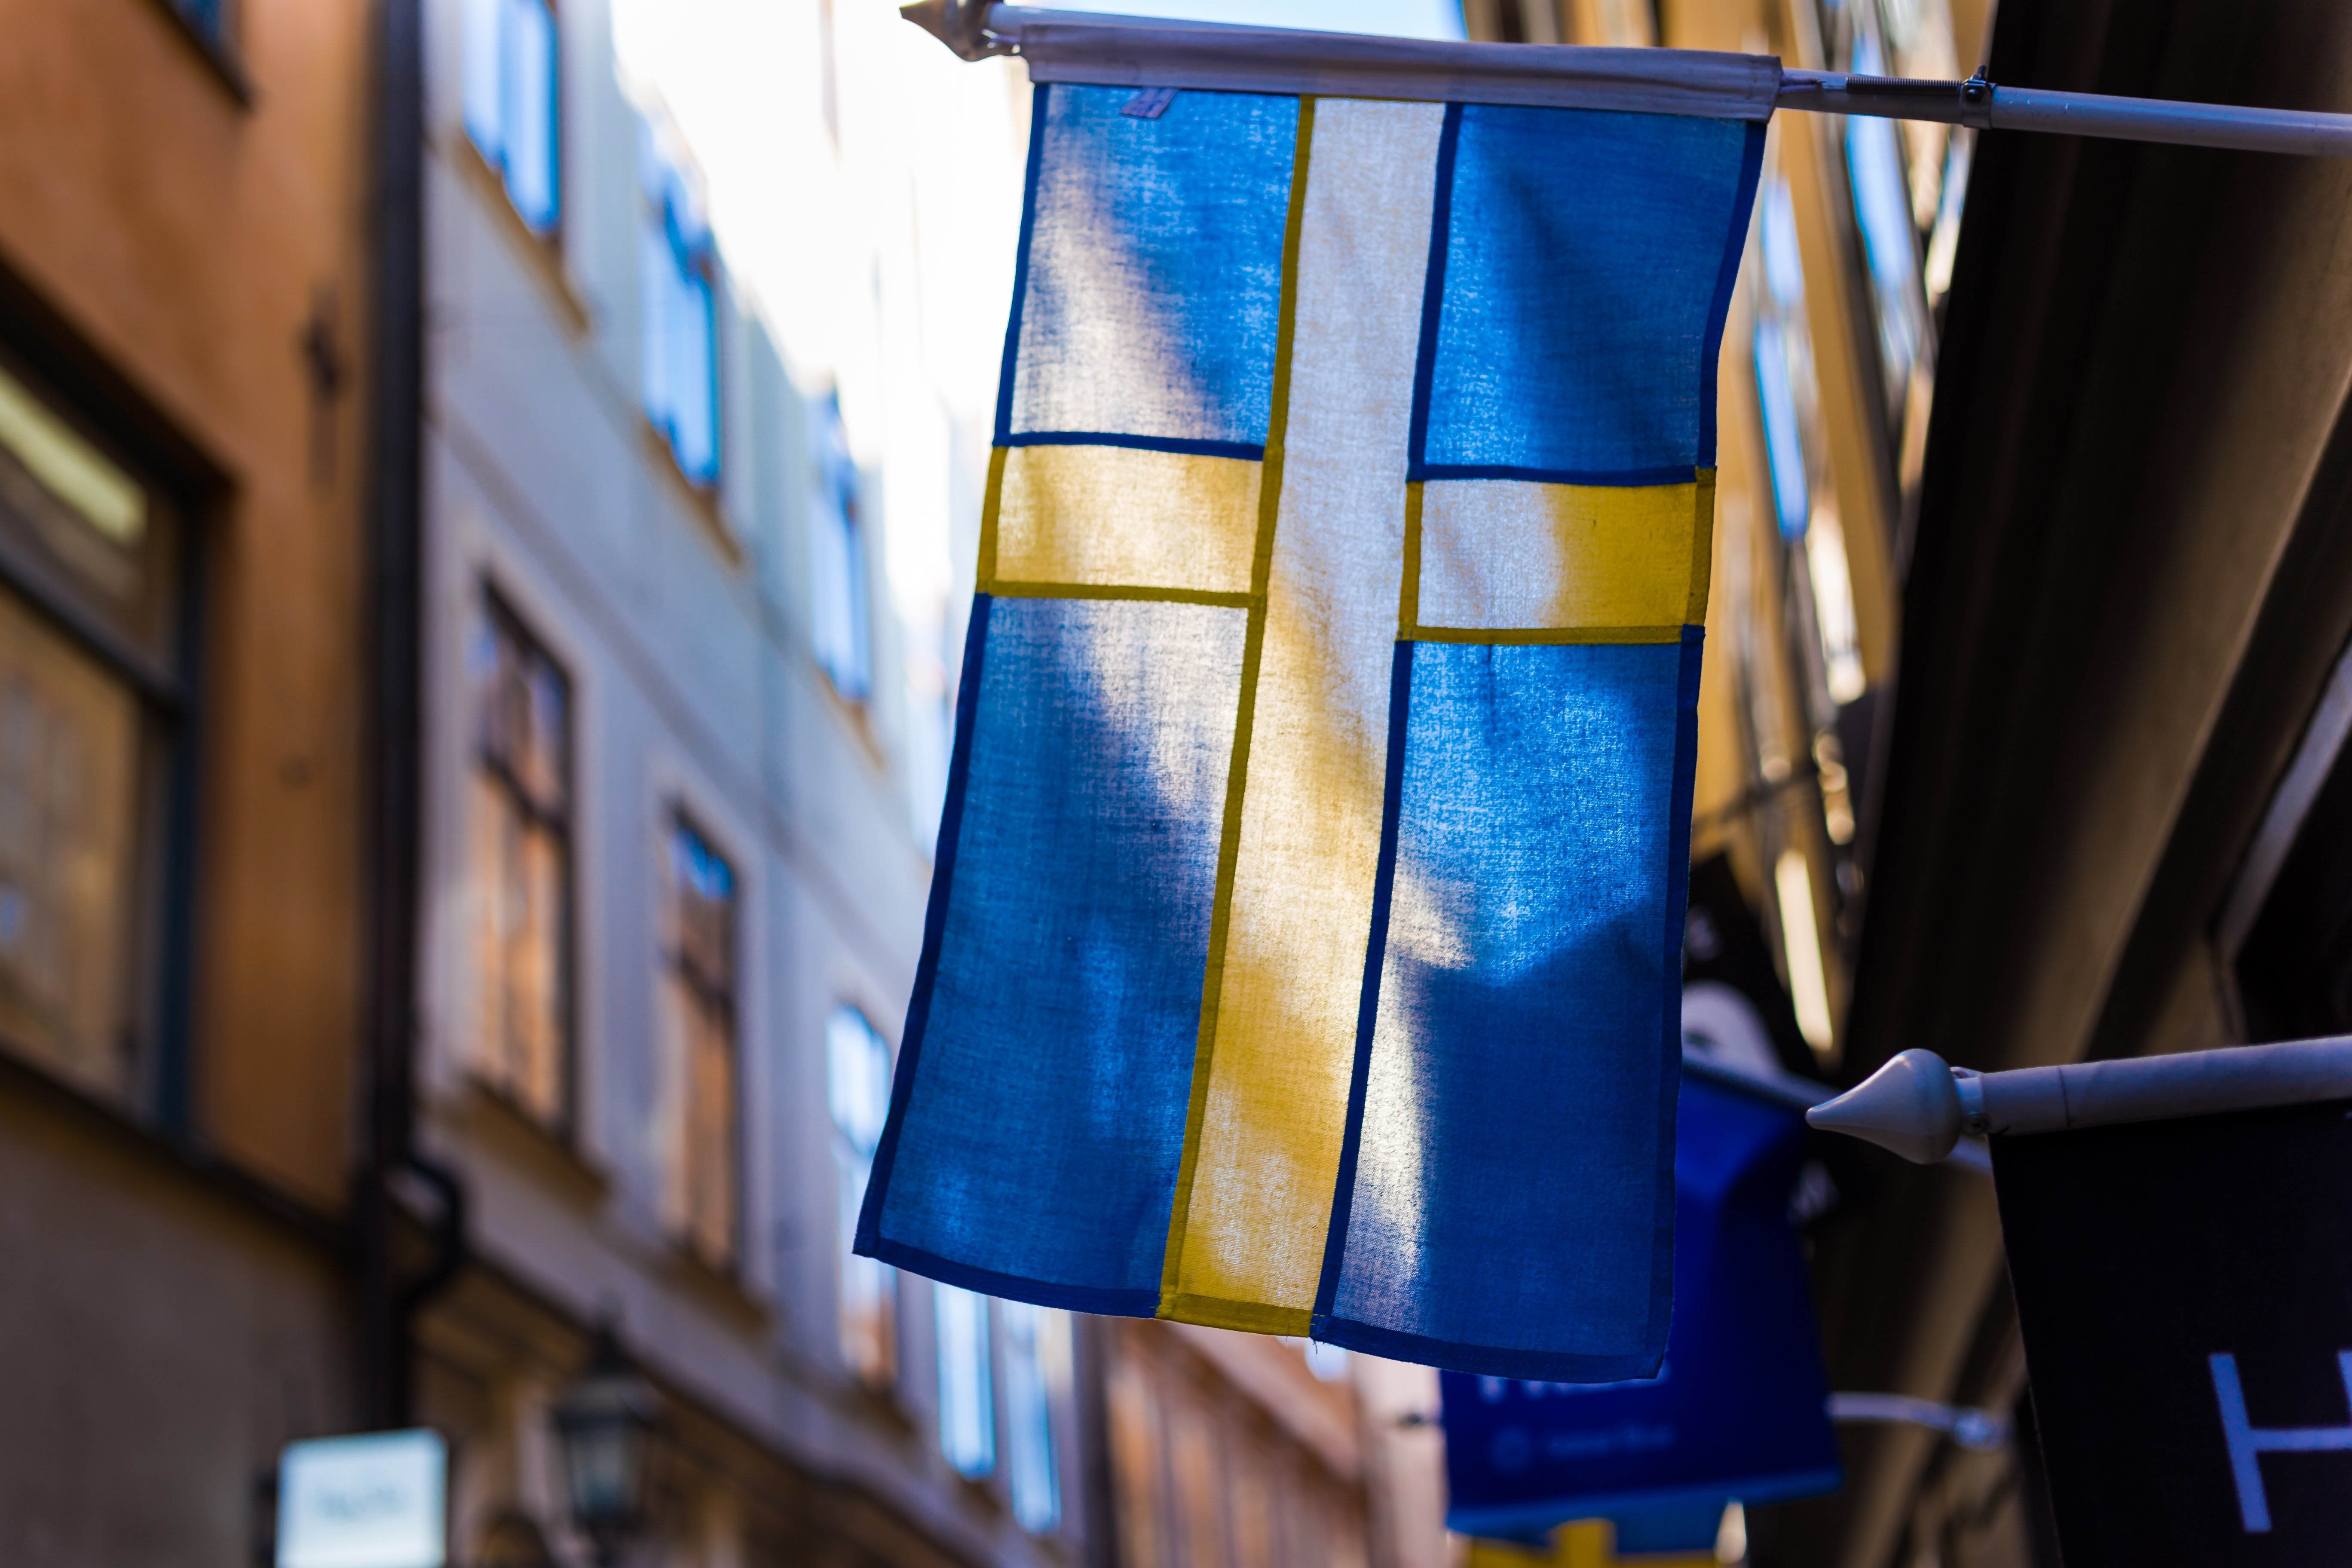 Explainer: Sweden's divergent COVID-19 strategy